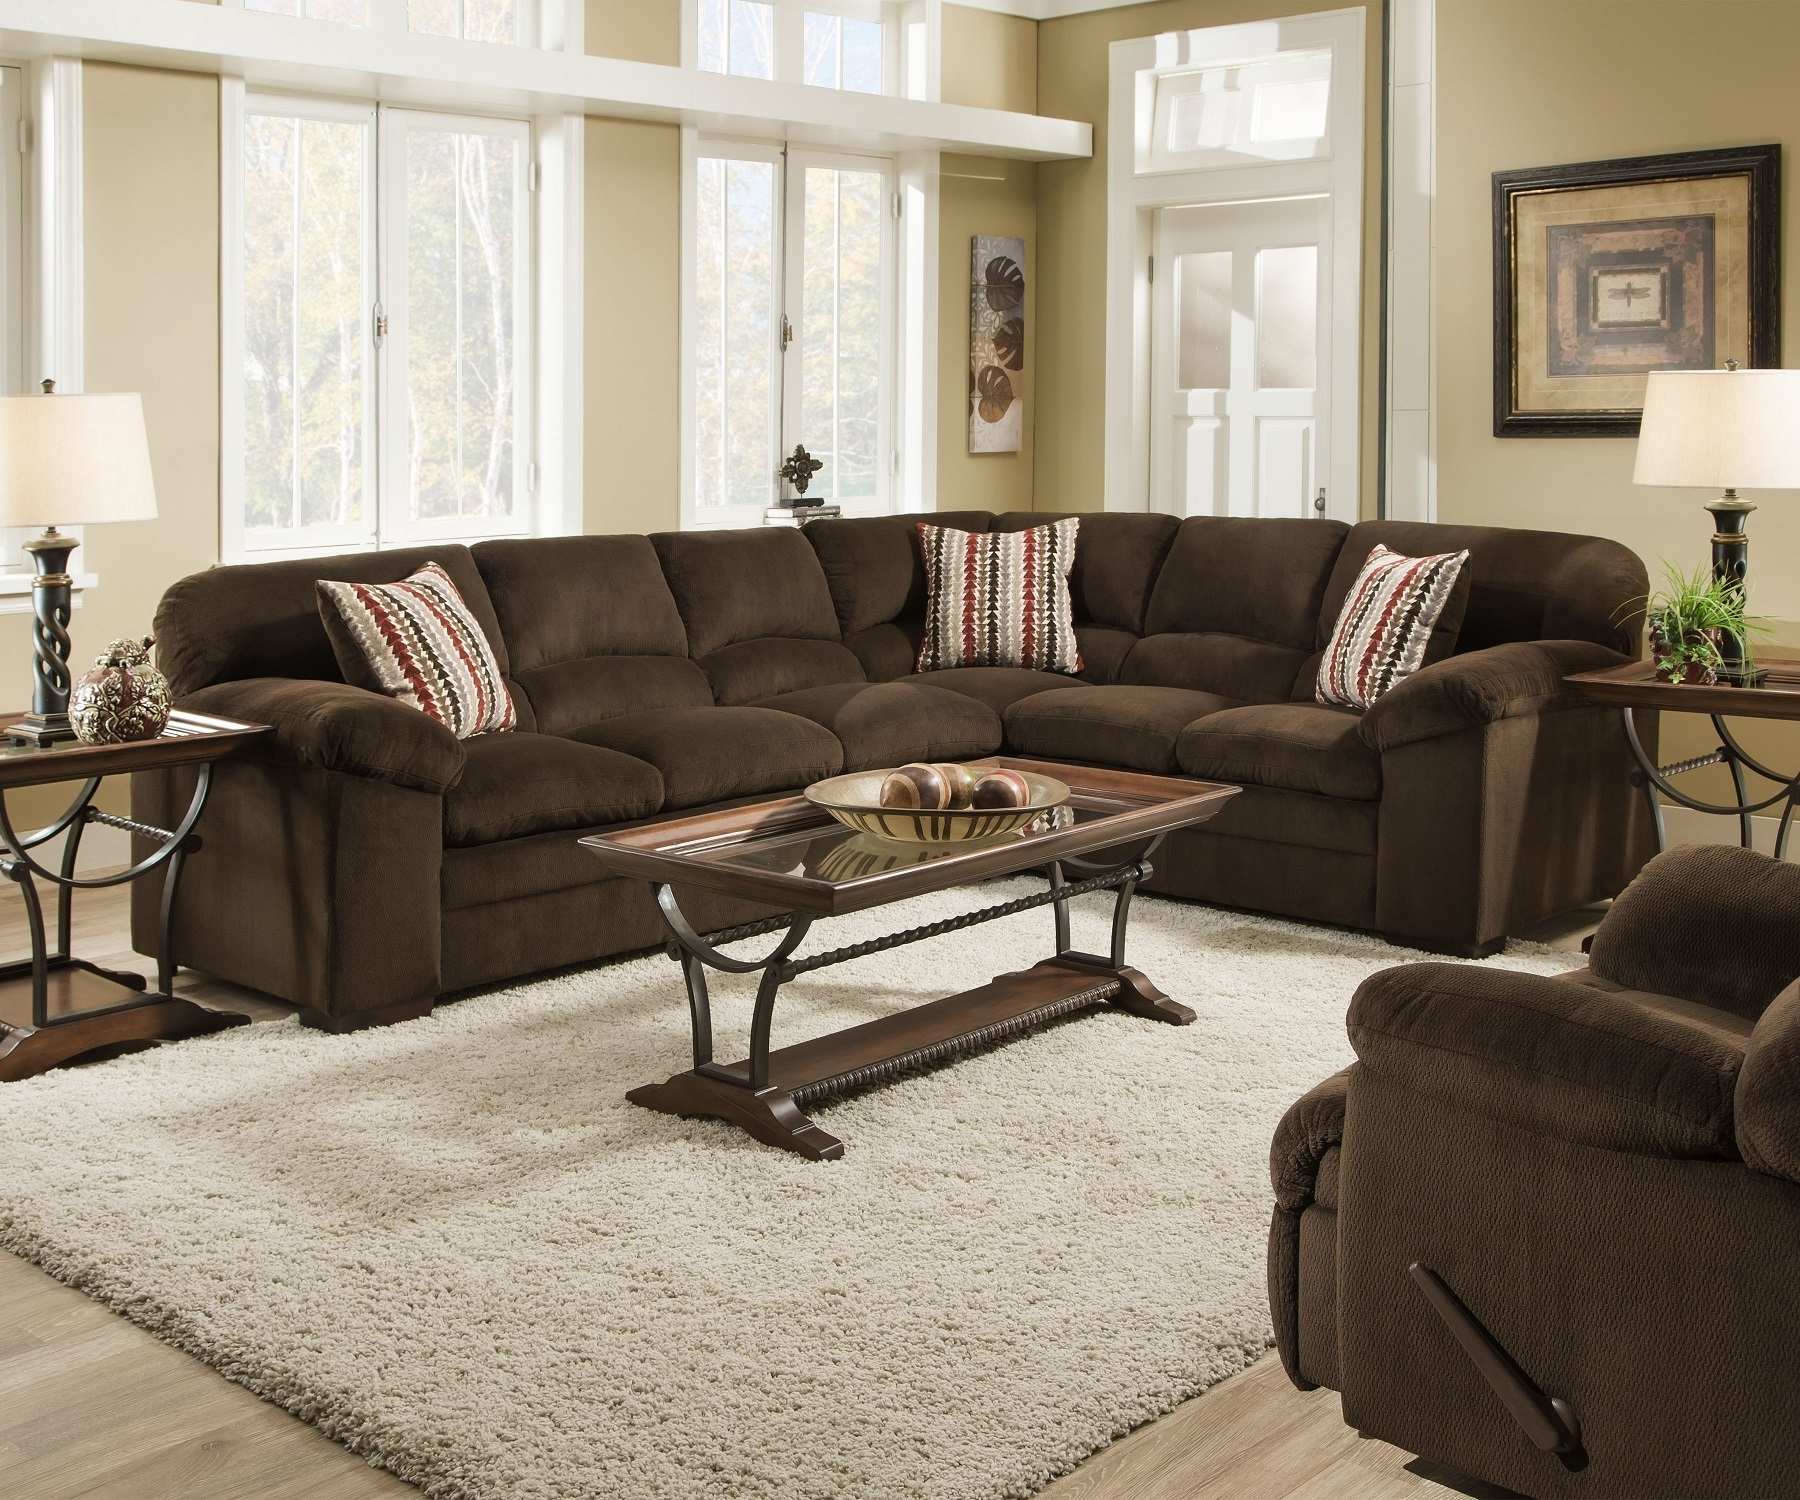 Simmons Dover 8043 Chocolate Ultra Plush Soft Seating Made In The Usa In Well Known Simmons Sectional Sofas (View 4 of 15)